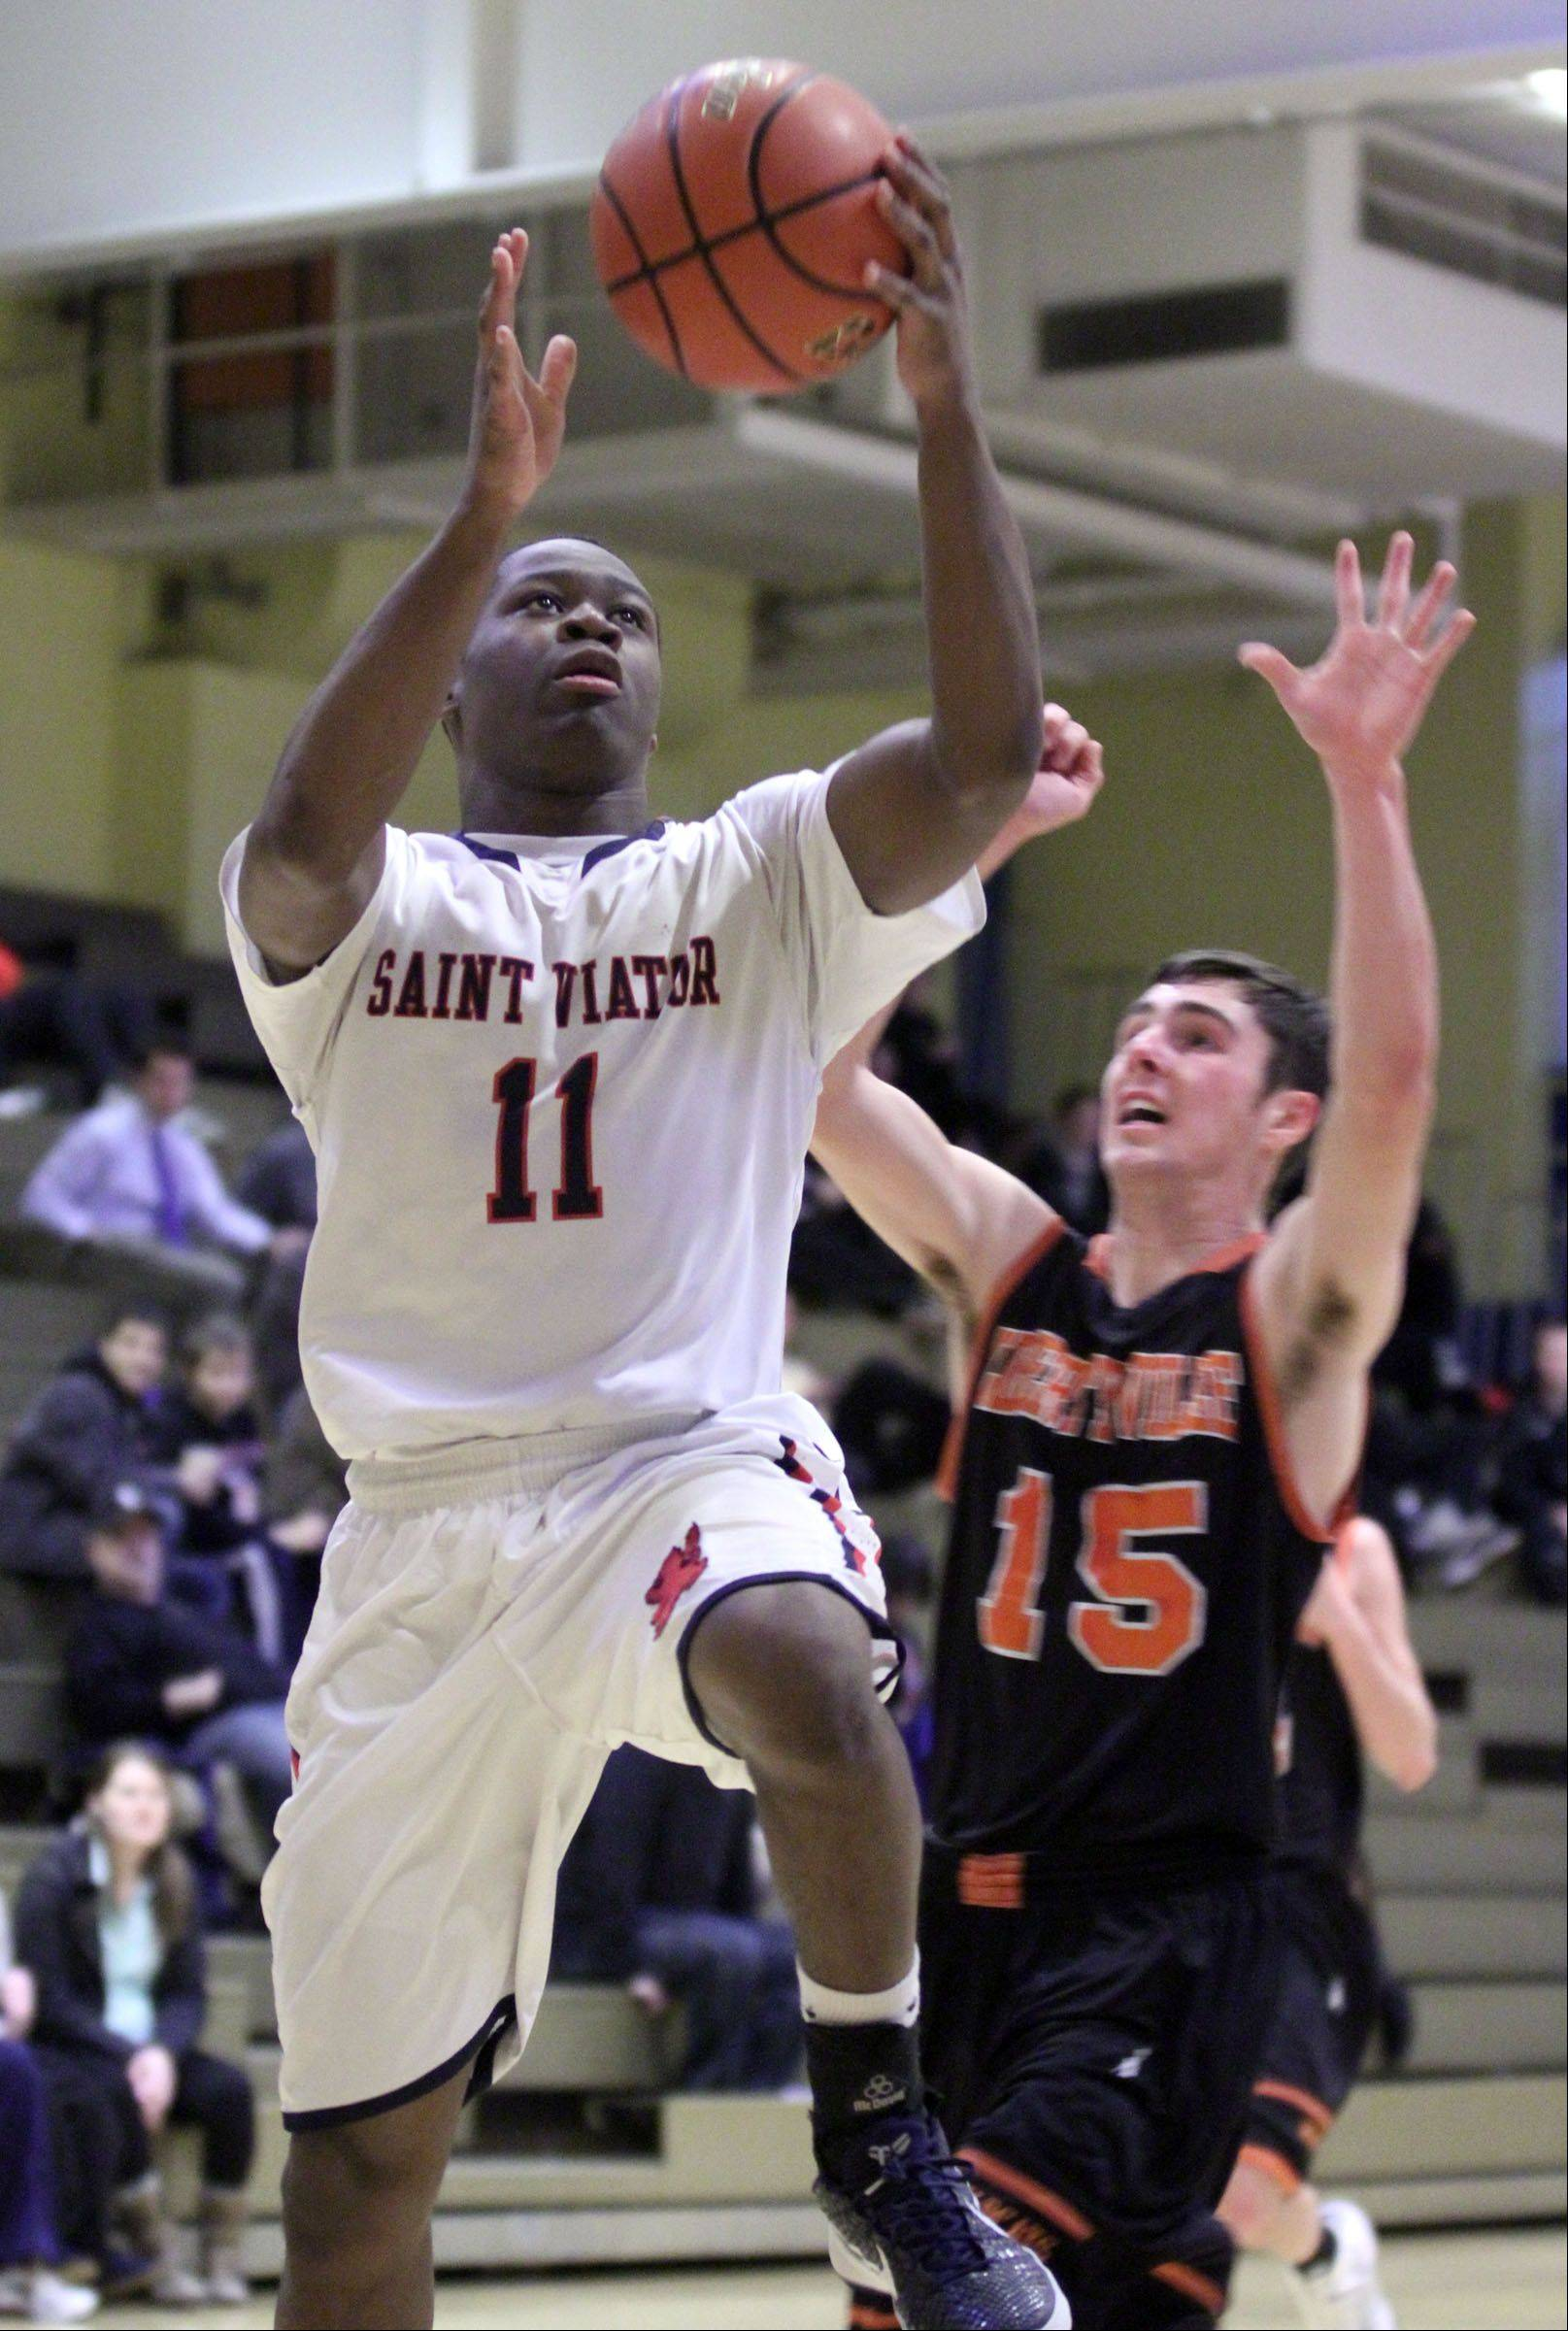 St. Viator's Mayo Arogundade puts the ball up against Libertyville defender Matt Reed on Wednesday in Wheeling.